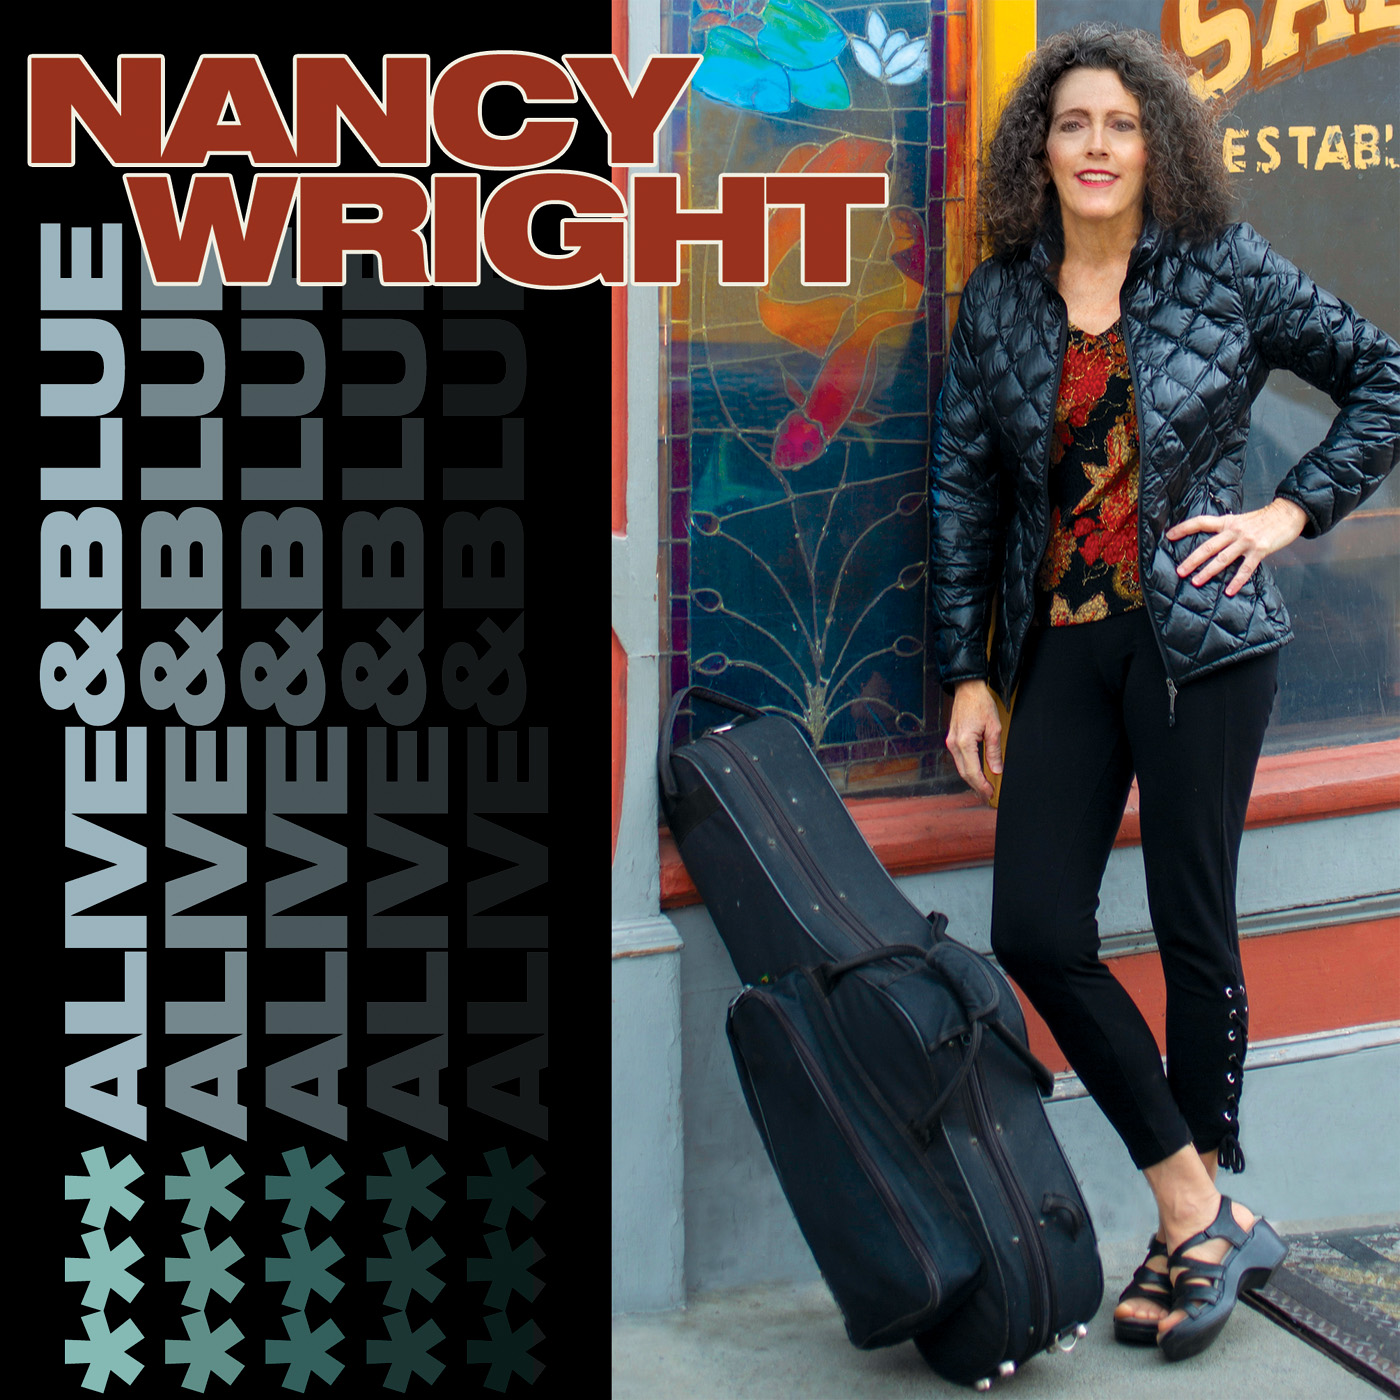 Nancy Wright ALIVE & BLUE (CD Cover)